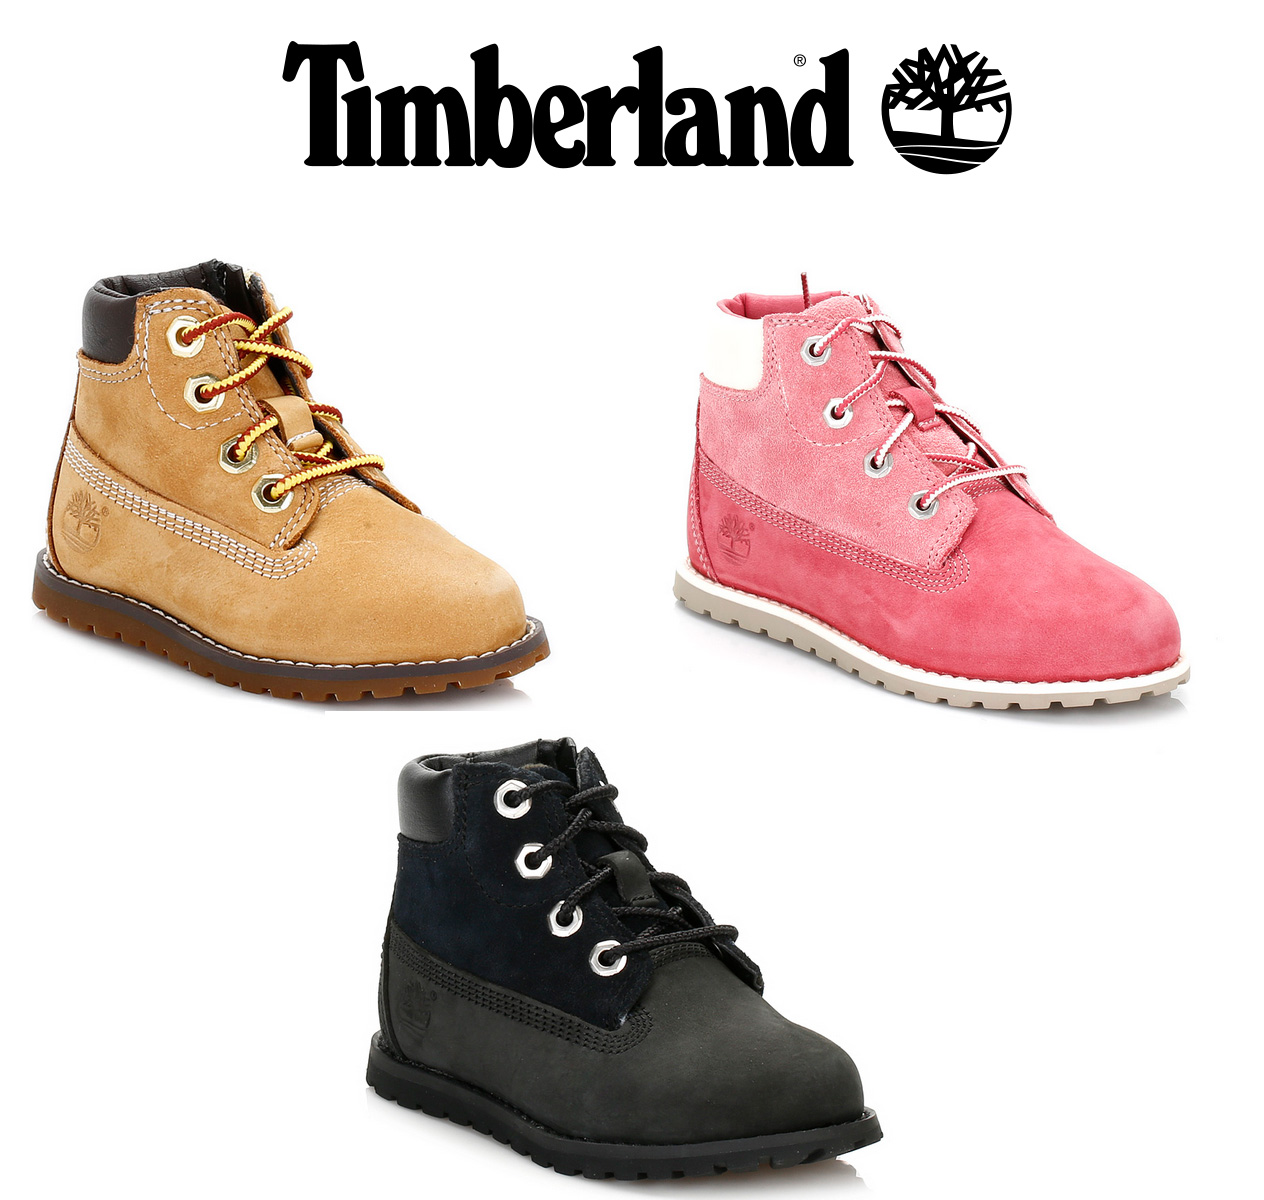 299711578d070 Details about Timberland Toddler Boots, Black Nubuck, 6